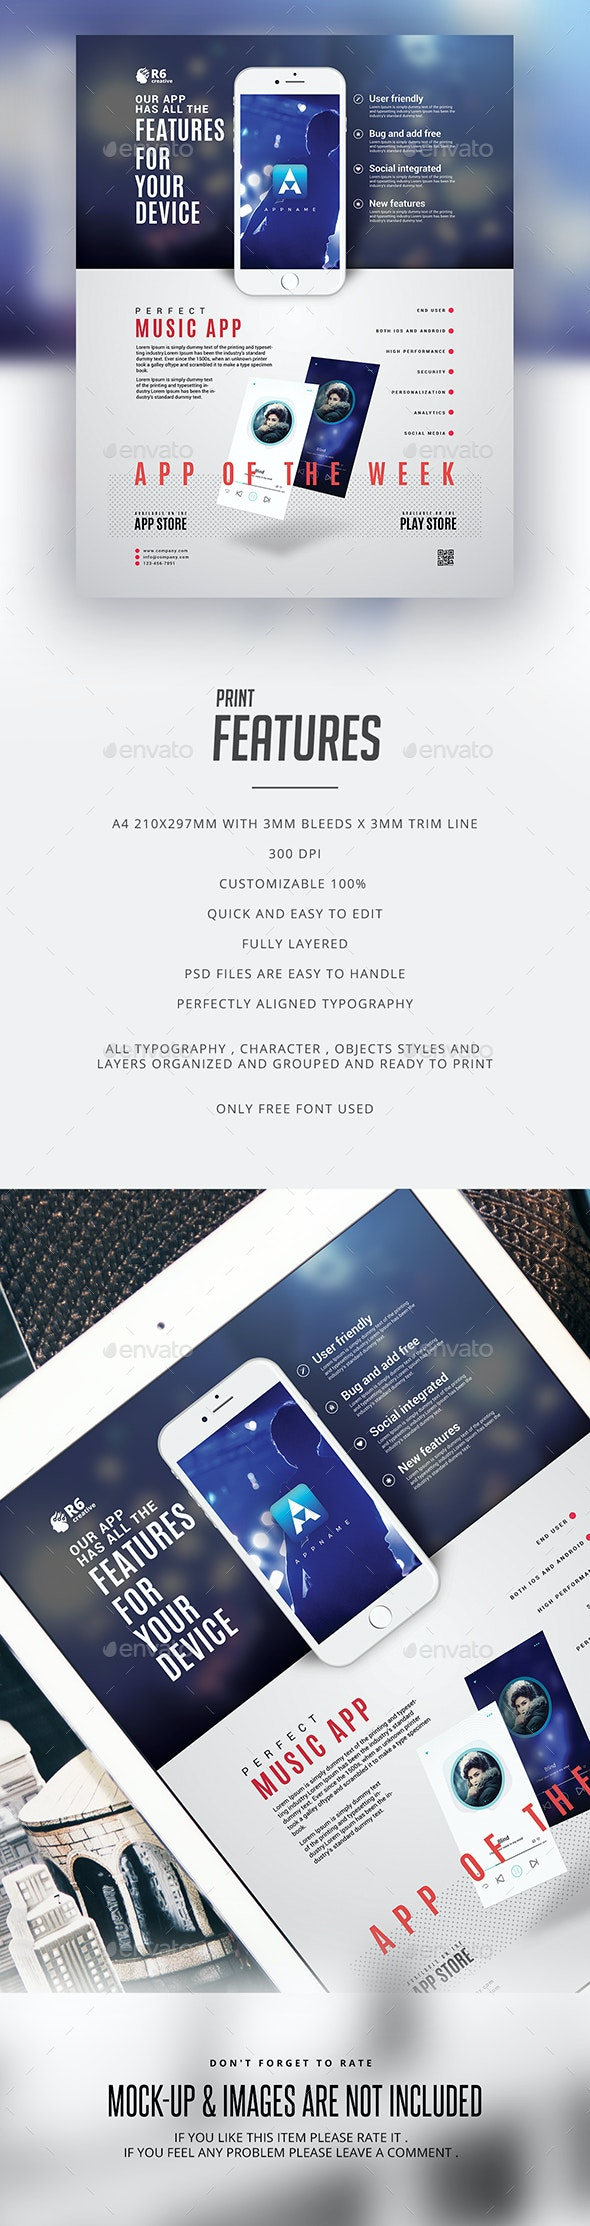 Mobile App Flyer Template - Events Flyers